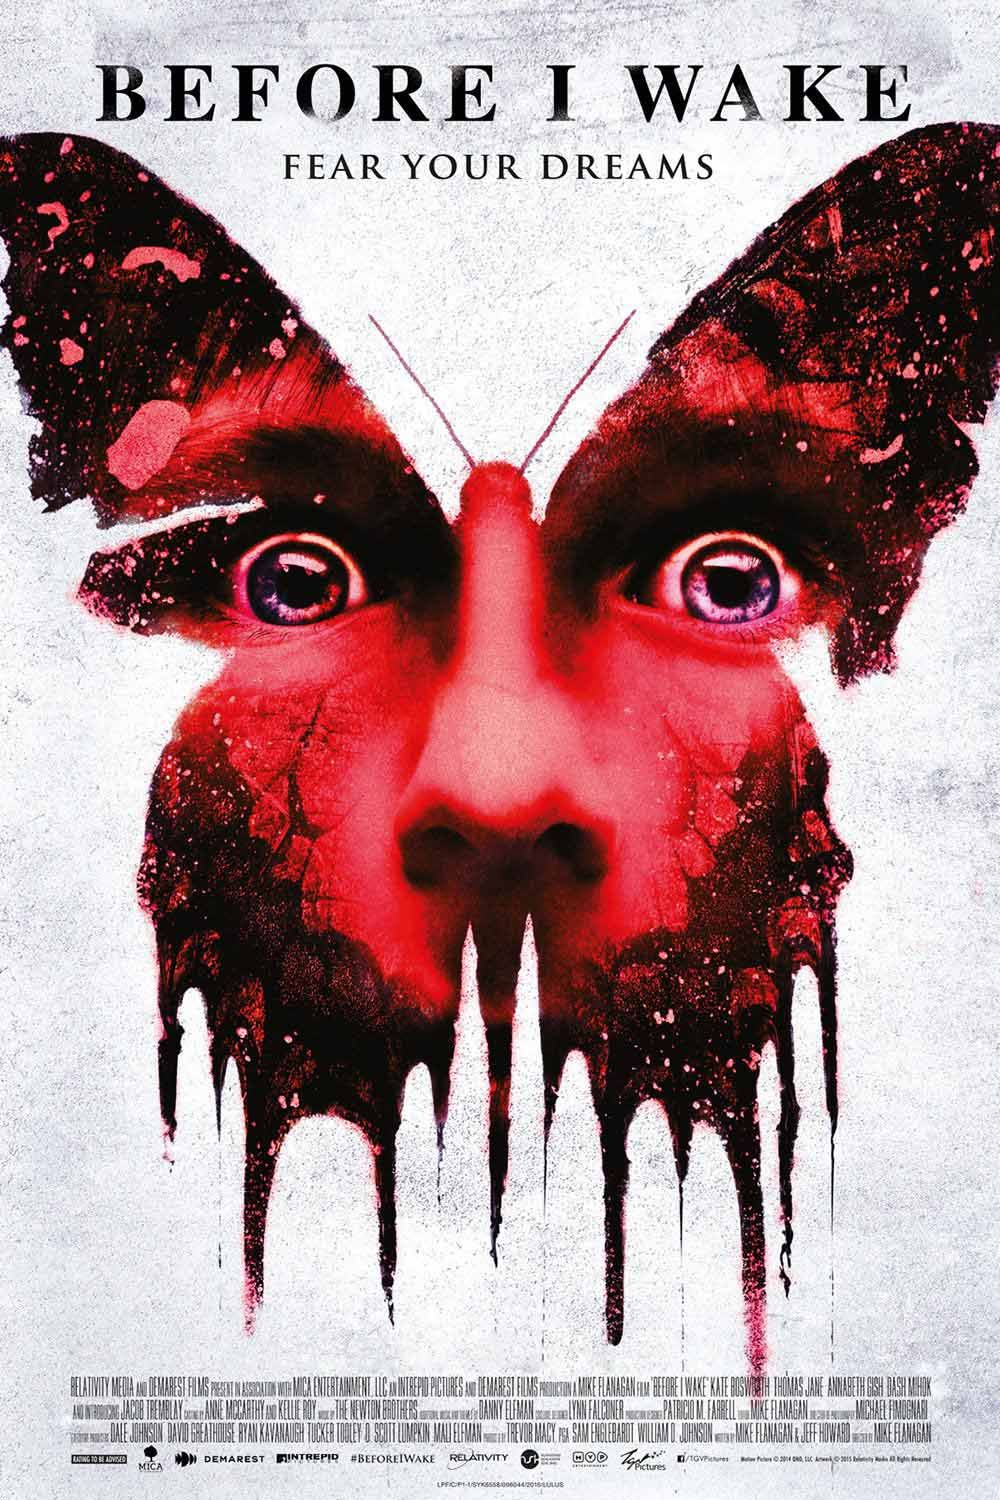 Before I Wake 2016 Horror Thriller Drama Fantasy Movie